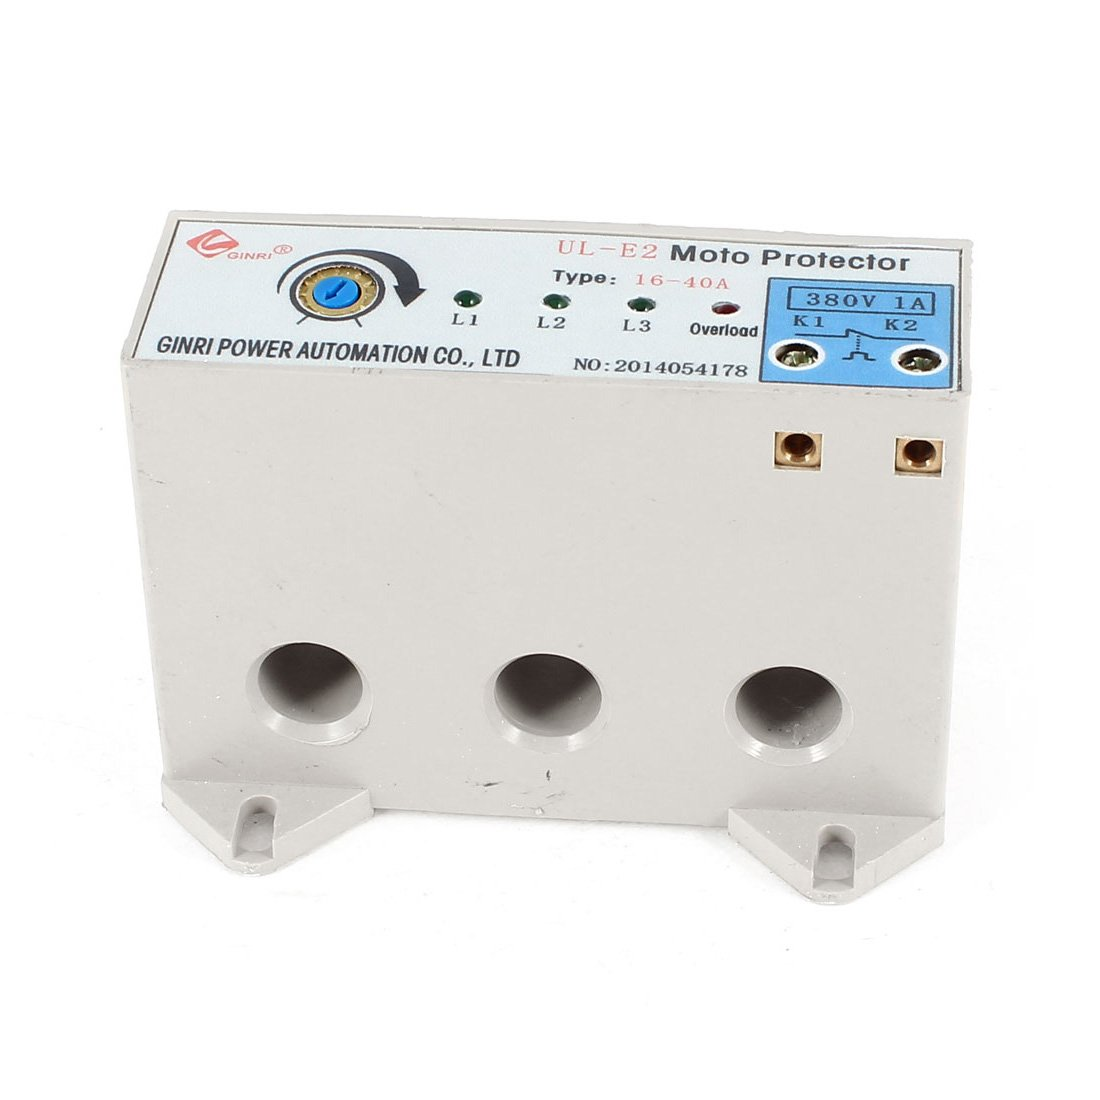 uxcell UL-E2 3 Phase 16-40 Ampere Adjustable Current Motor Circuit Protector AC24-380V by uxcell (Image #1)